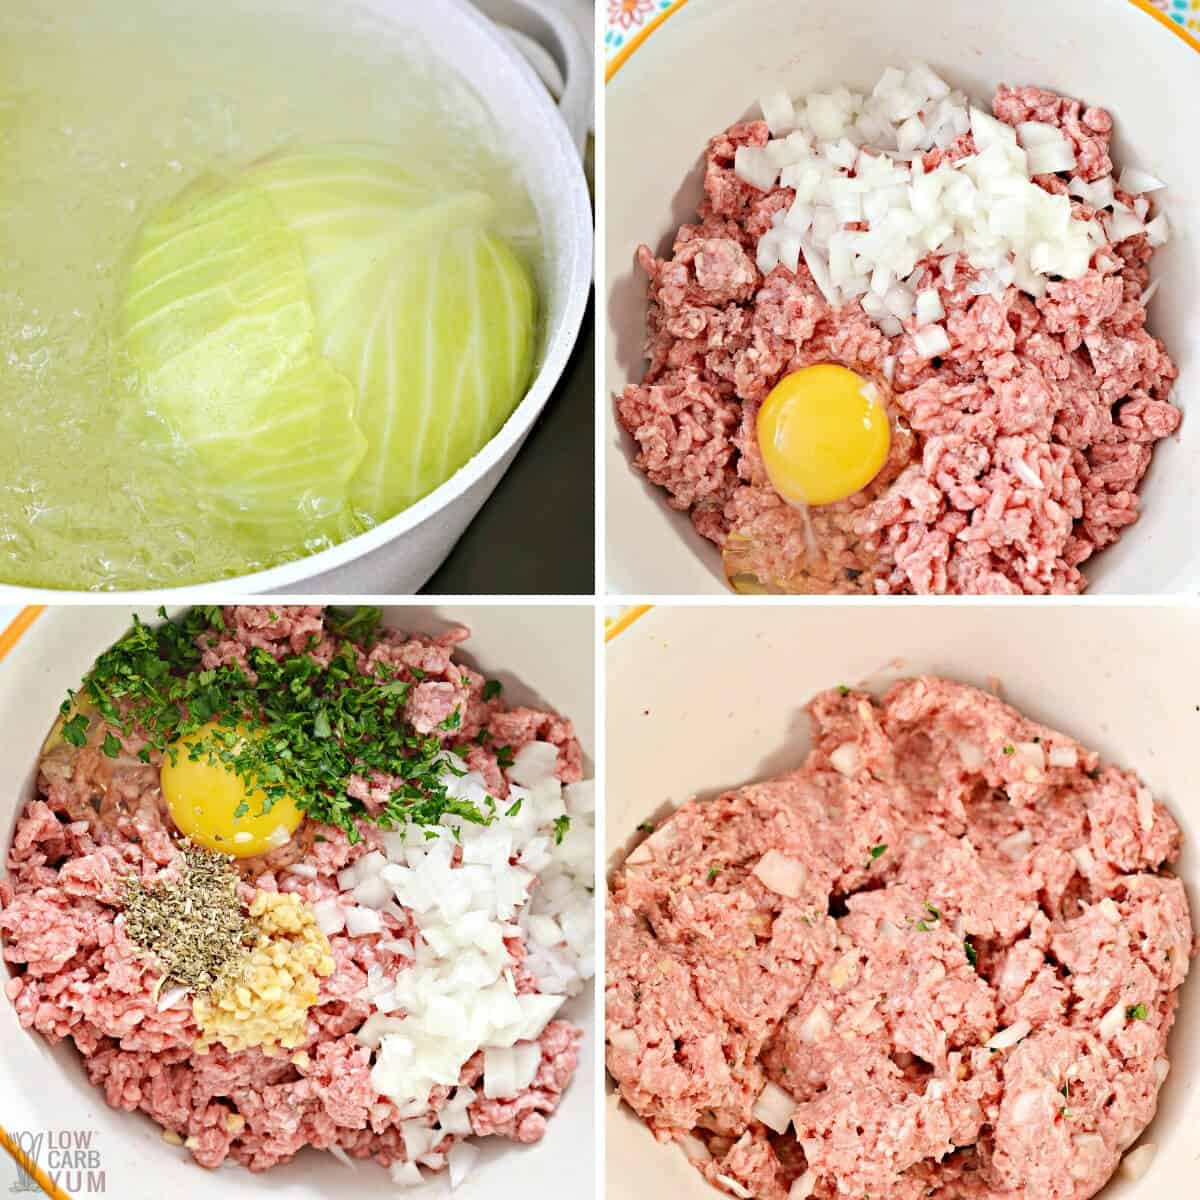 prepping cabbage and making beef filling